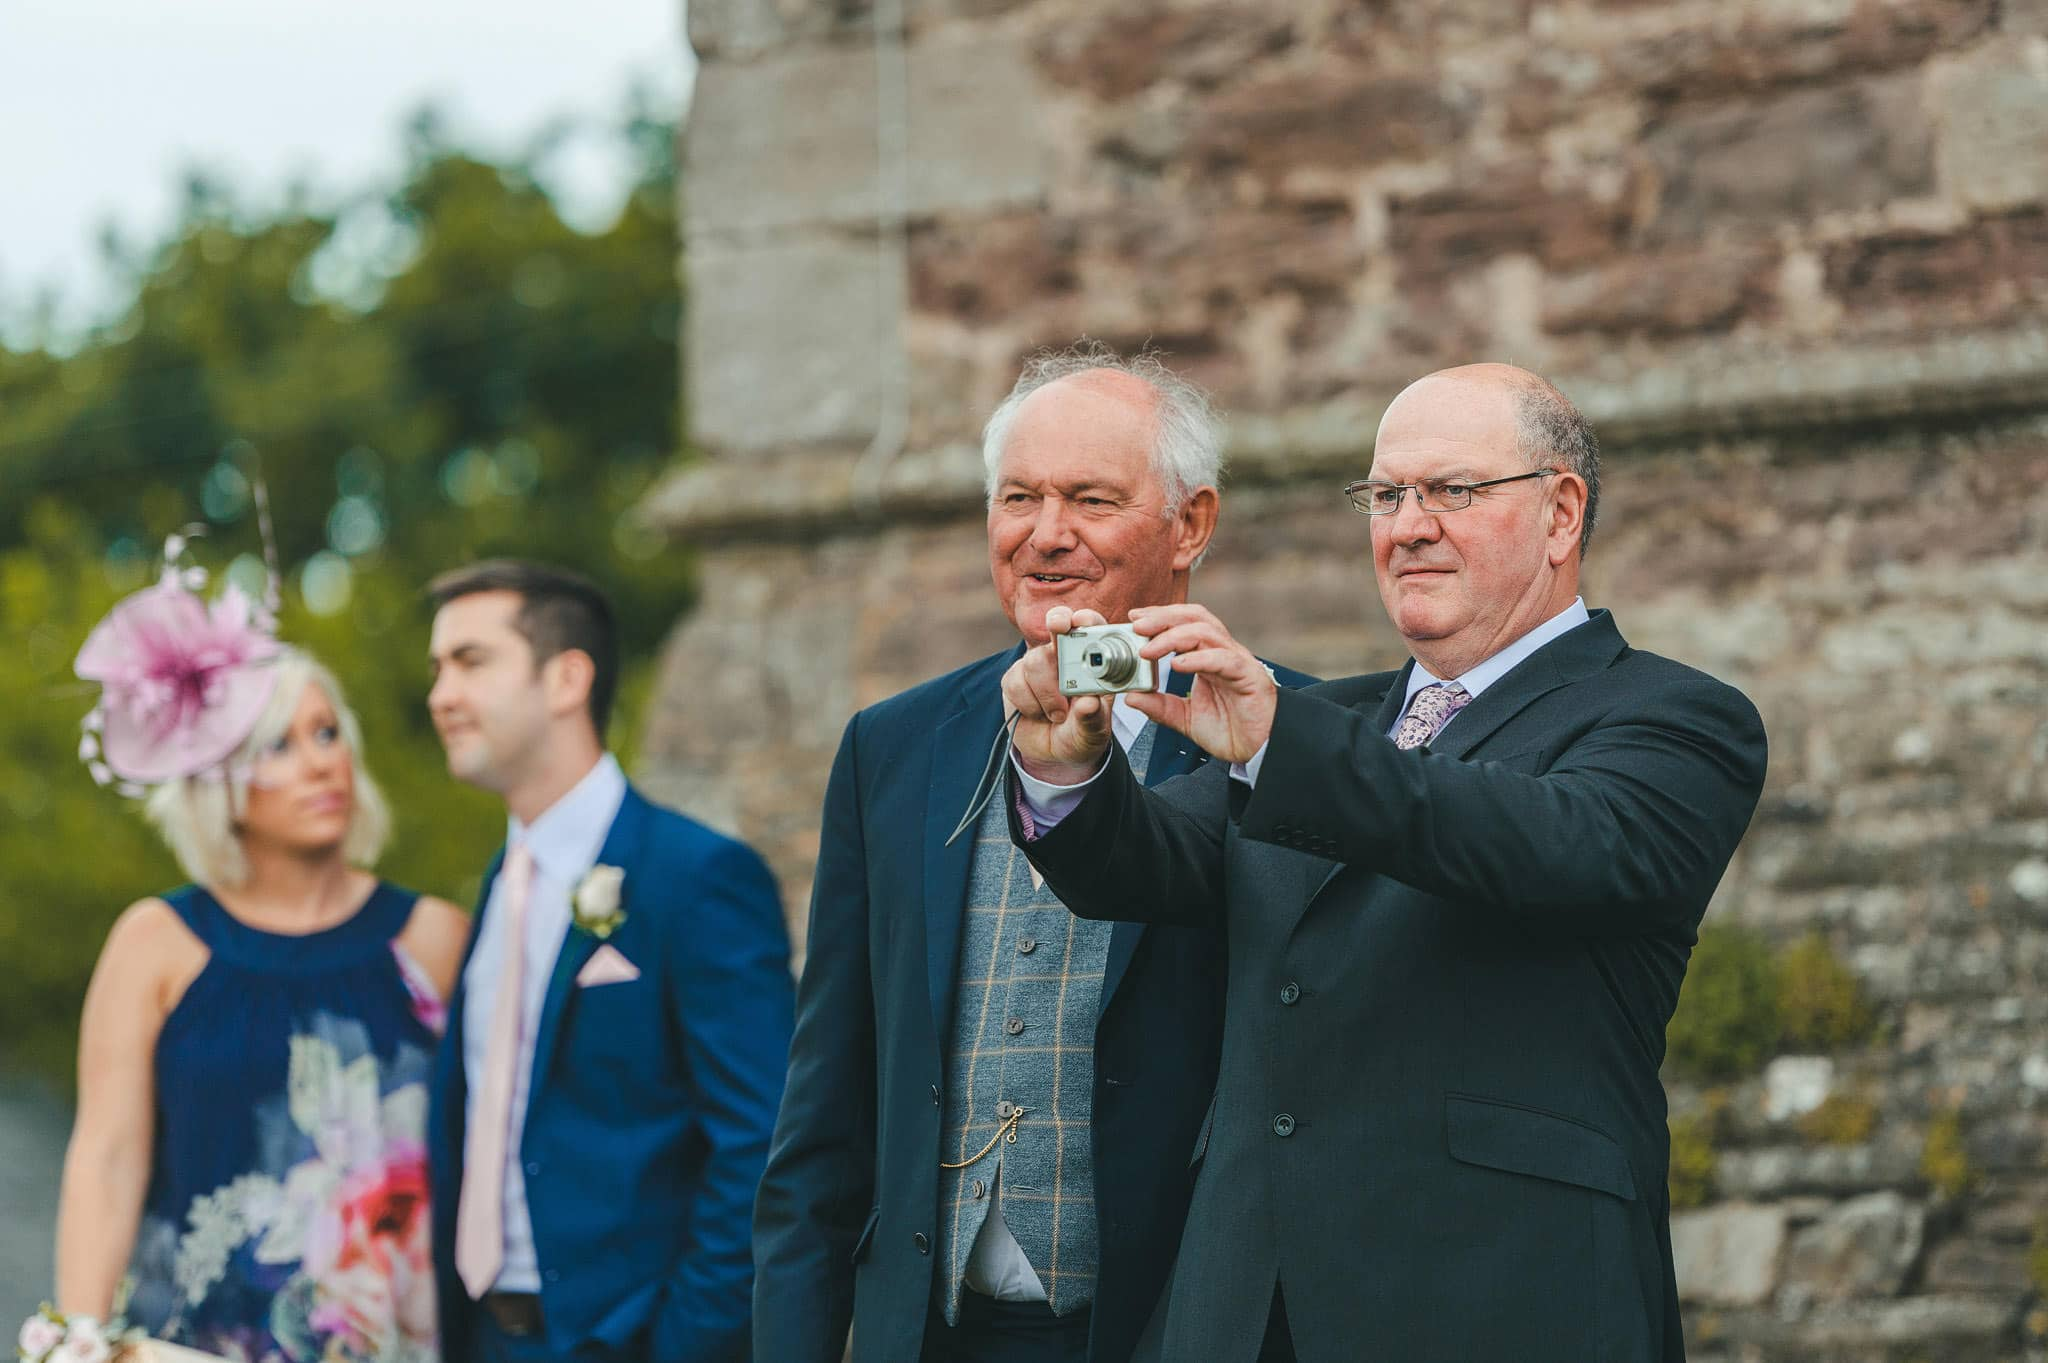 west-midlands-wedding-photographer (66)